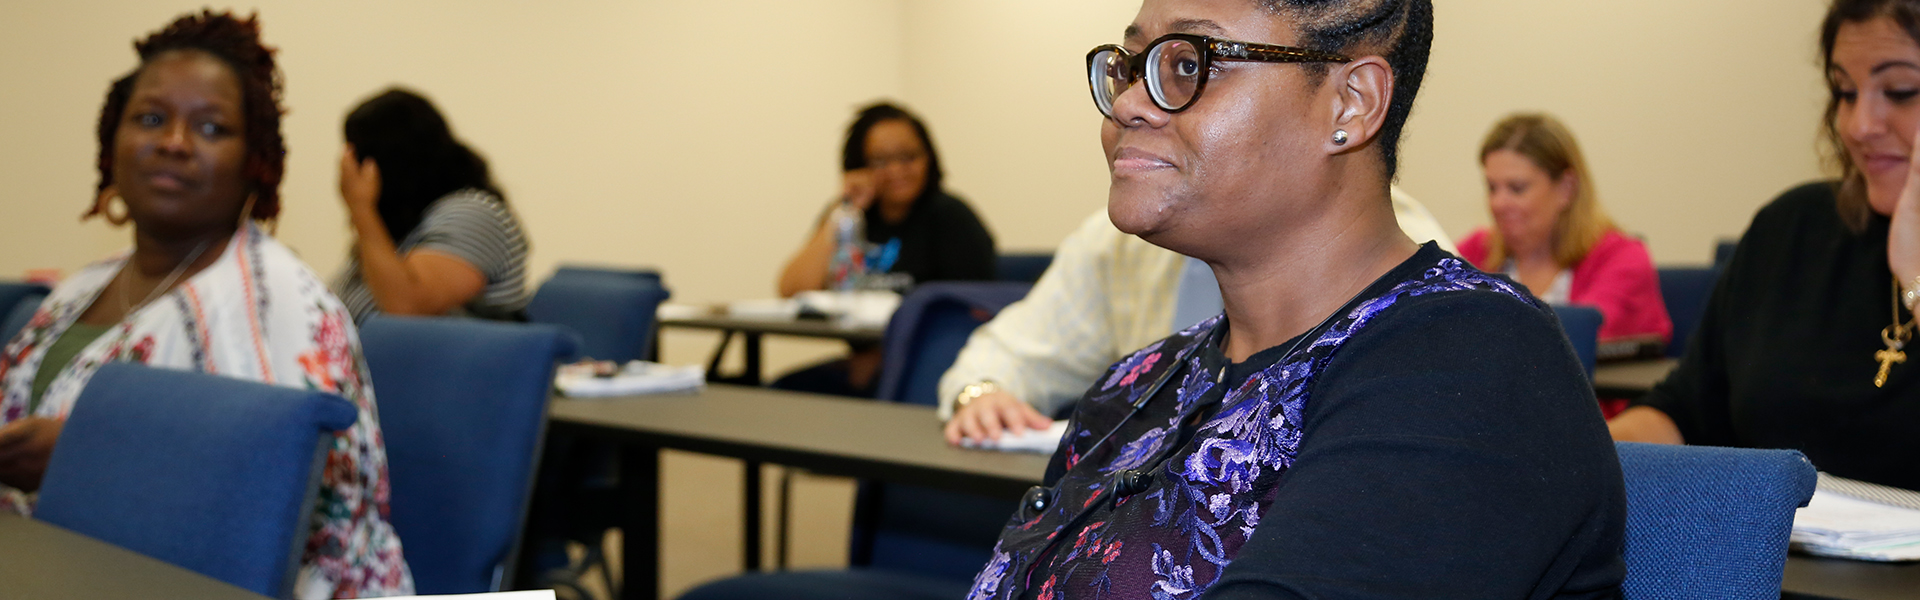 Adult student attends a seminar class within the Faulkner College of Business